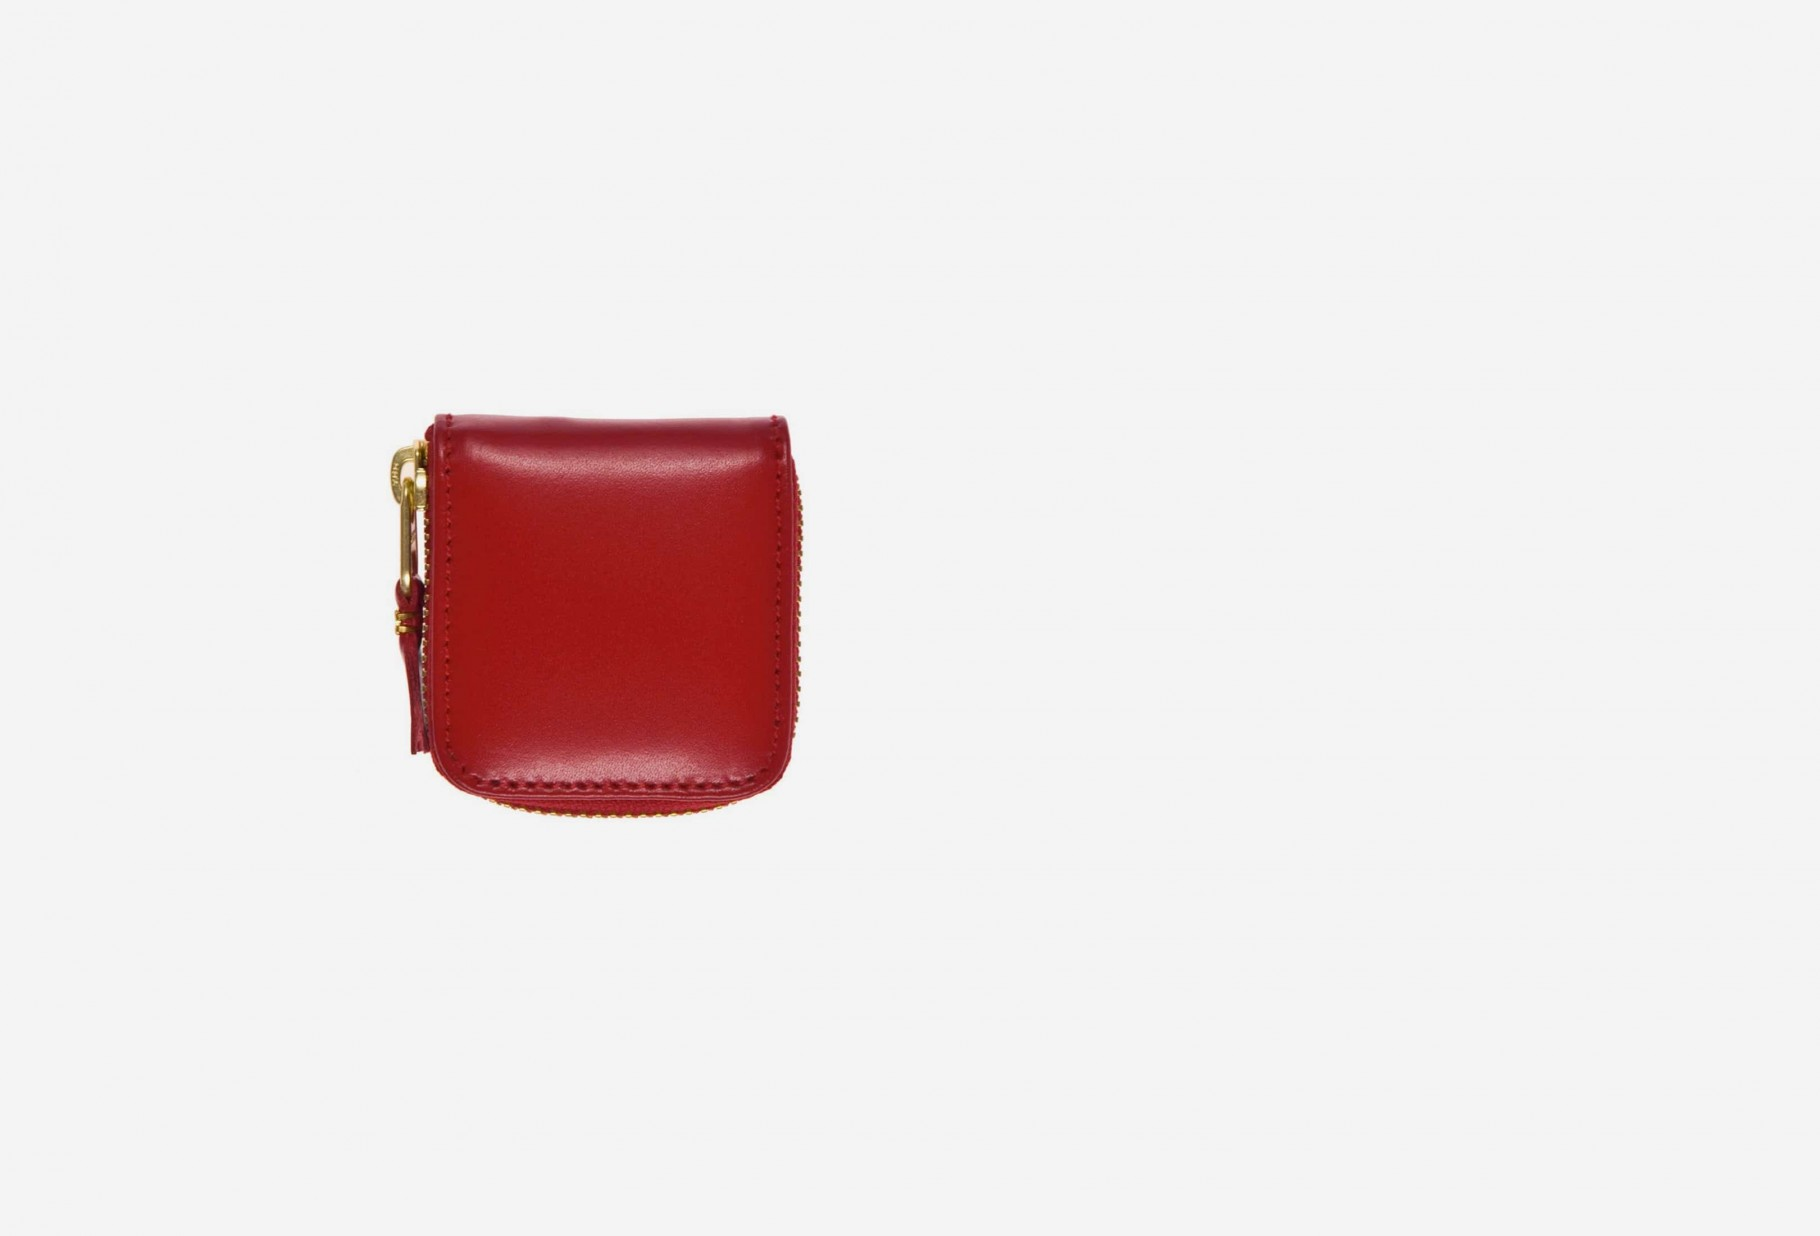 COMME DES GARÇONS WALLETS / Cdg leather wallet classic Sa4100 red